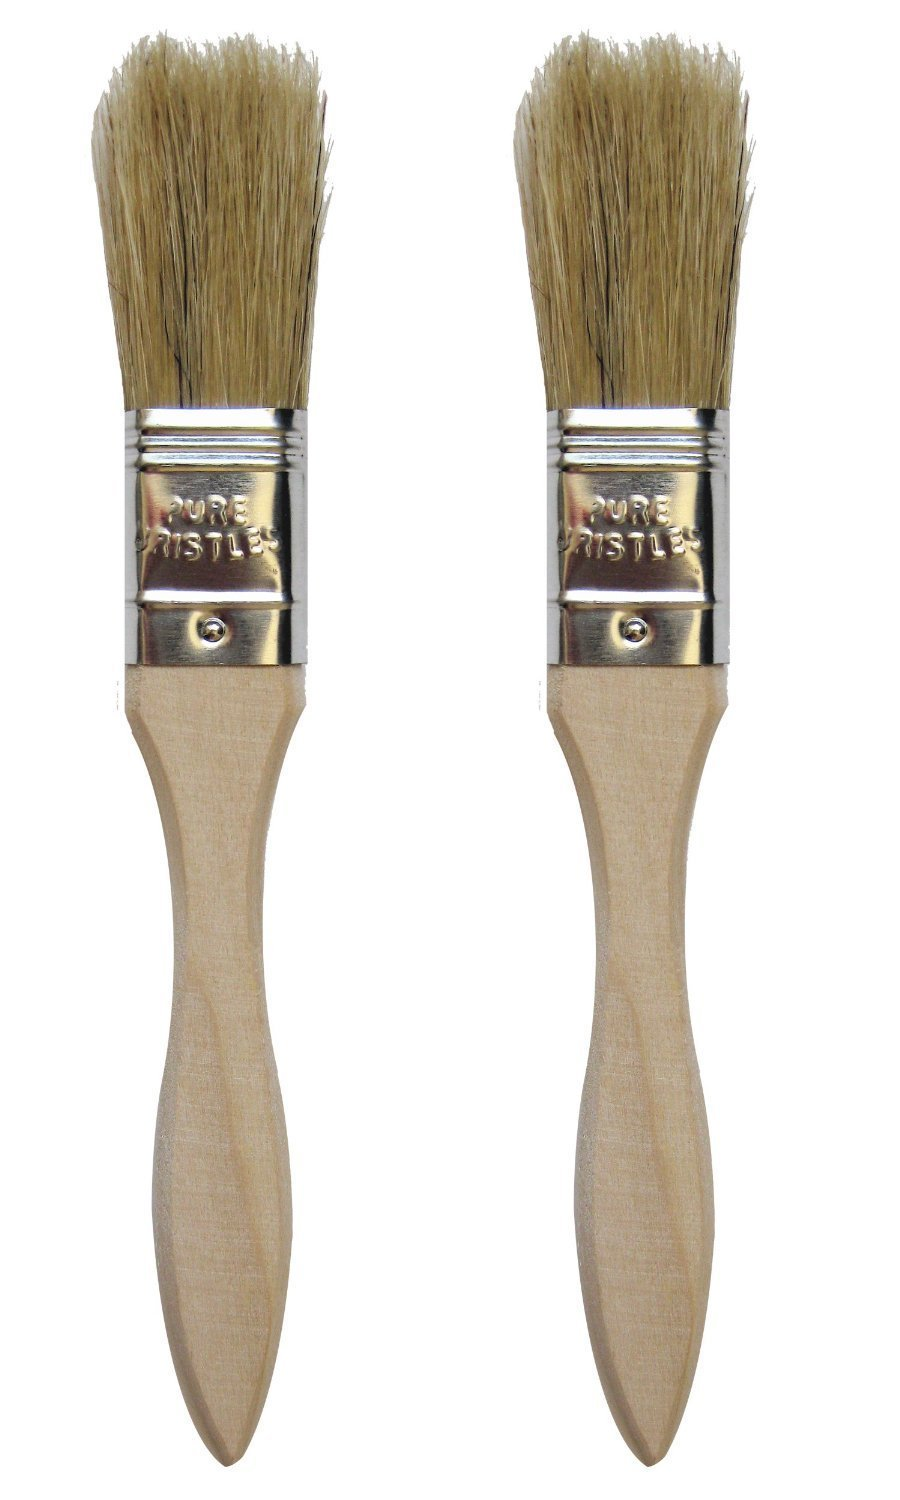 "Chef Craft 20393-2PK Set of 2 Natural Pastry Brushes, Wood Handle, 7.5"" 1.6"" Long Pure Bristles, Silver 1 Set of 2 natural bristle pastry brushes, wood handle, 7. 5"" Long with 1. 6"" Long pure bristles"